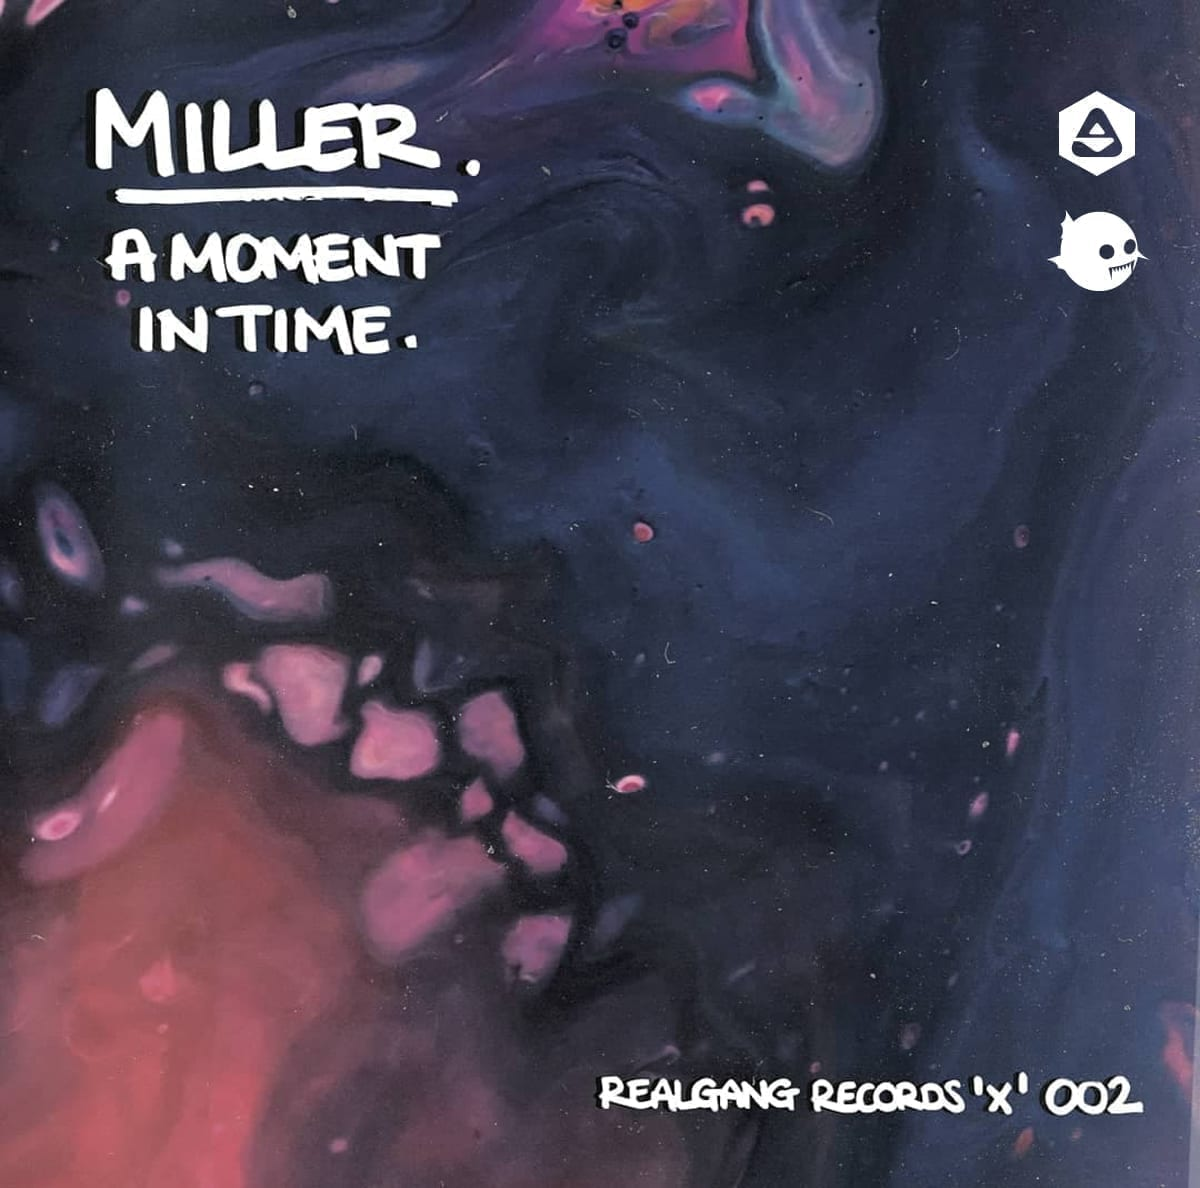 Miller - A Moment in Time 01